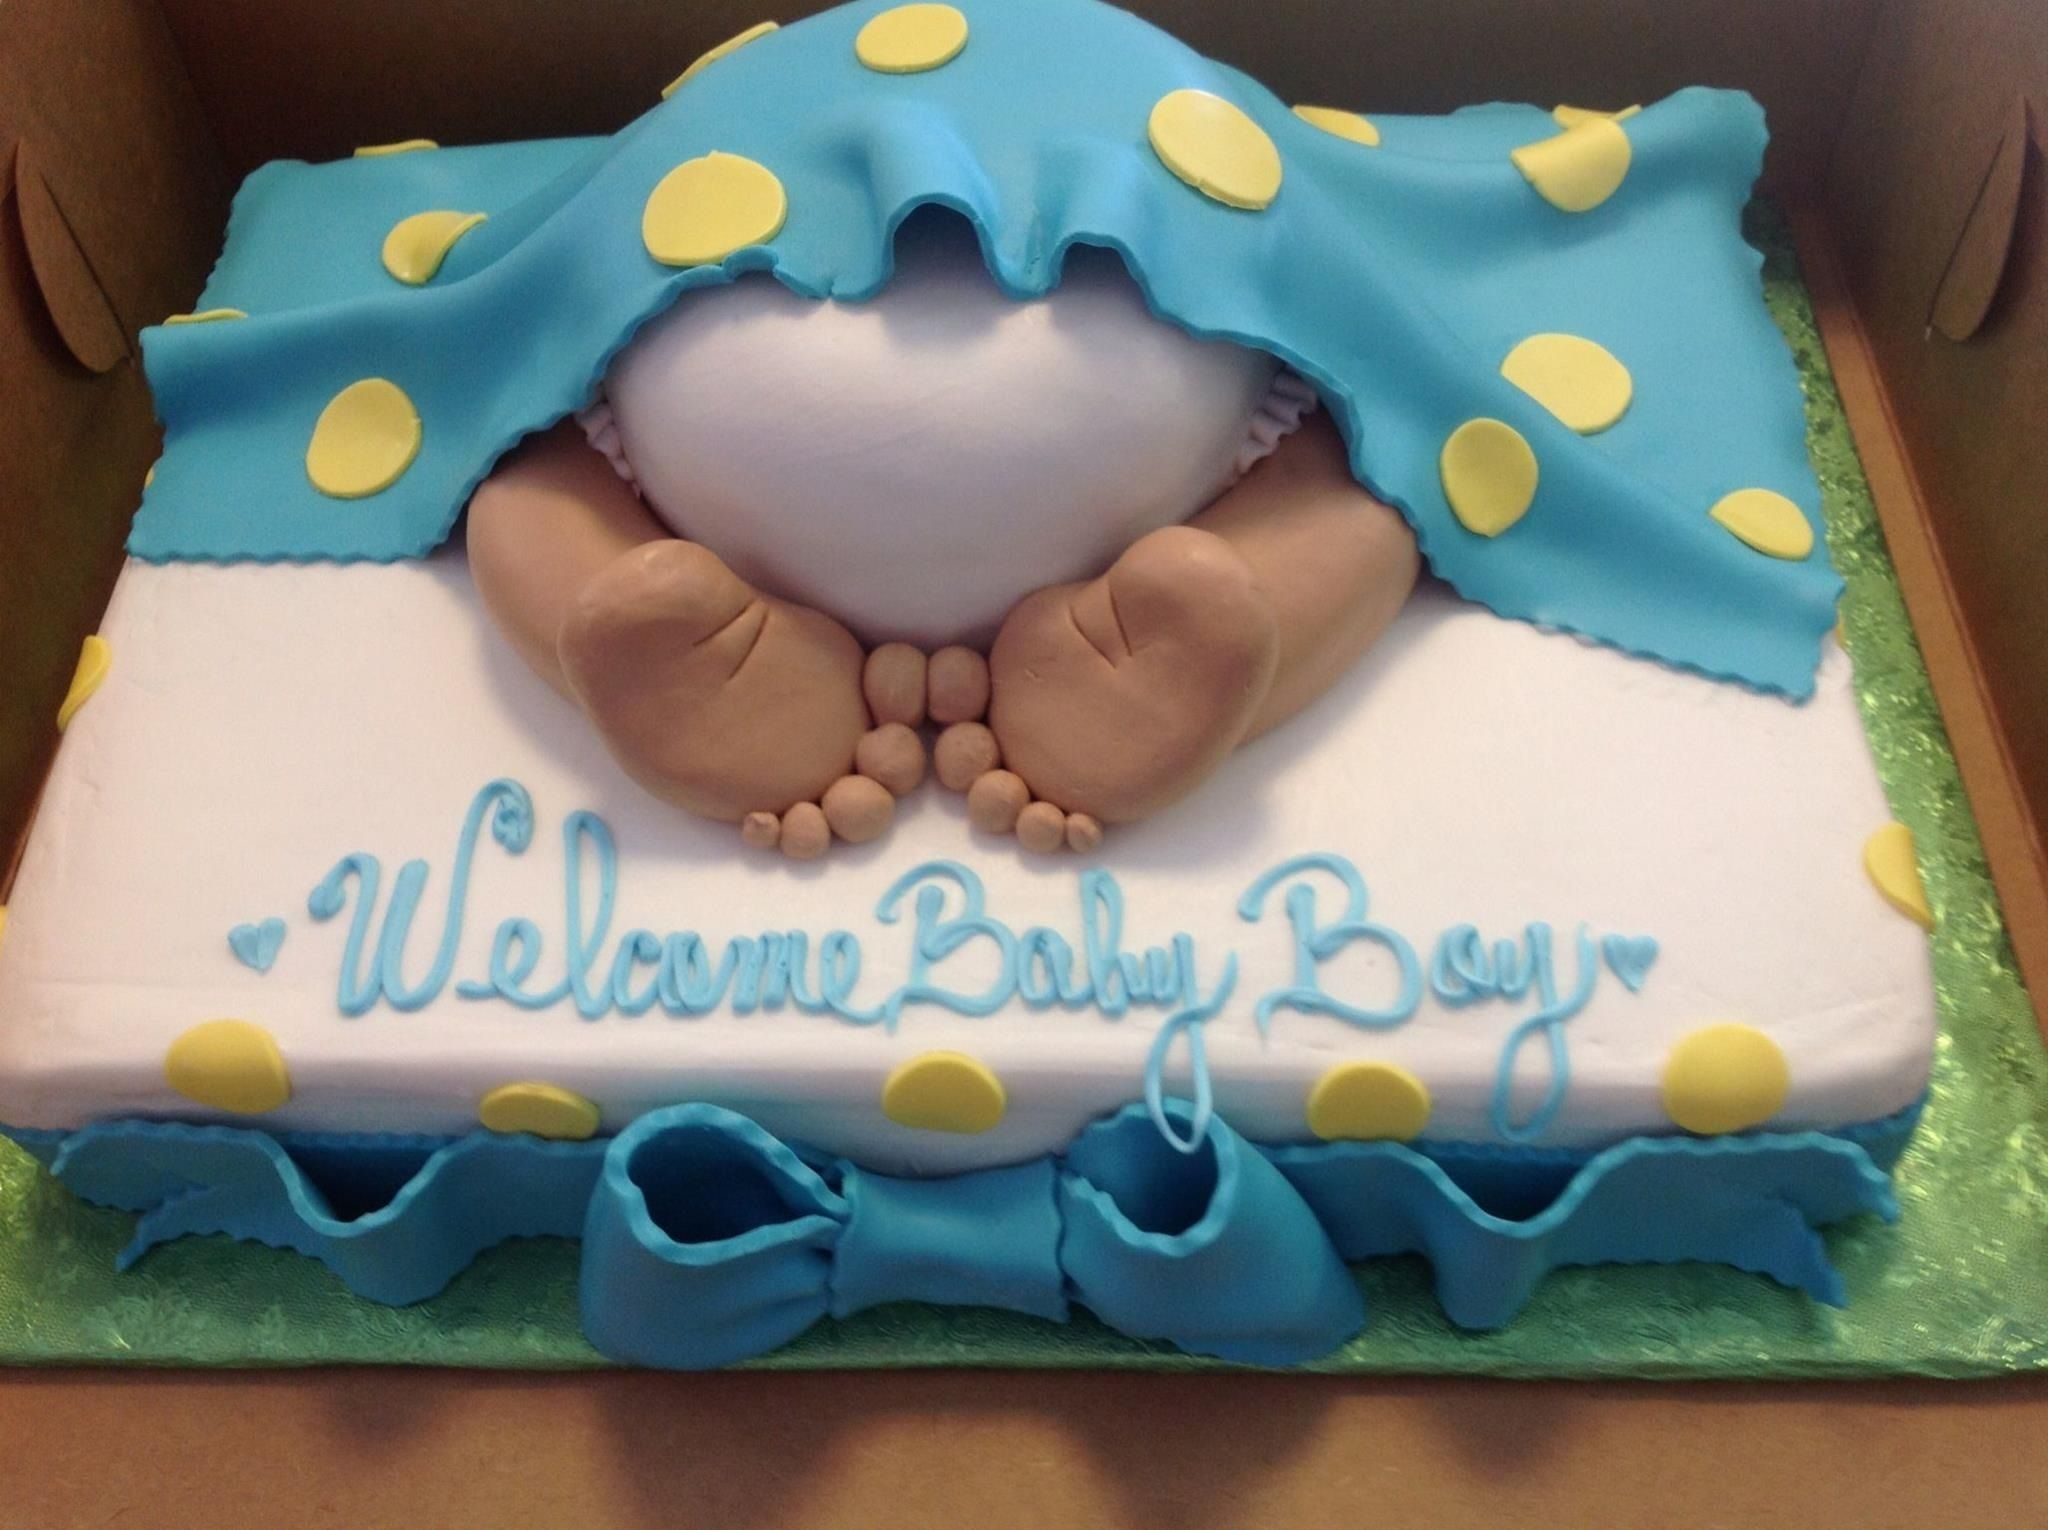 Baby Shower Cakes That Look Like Real Babies